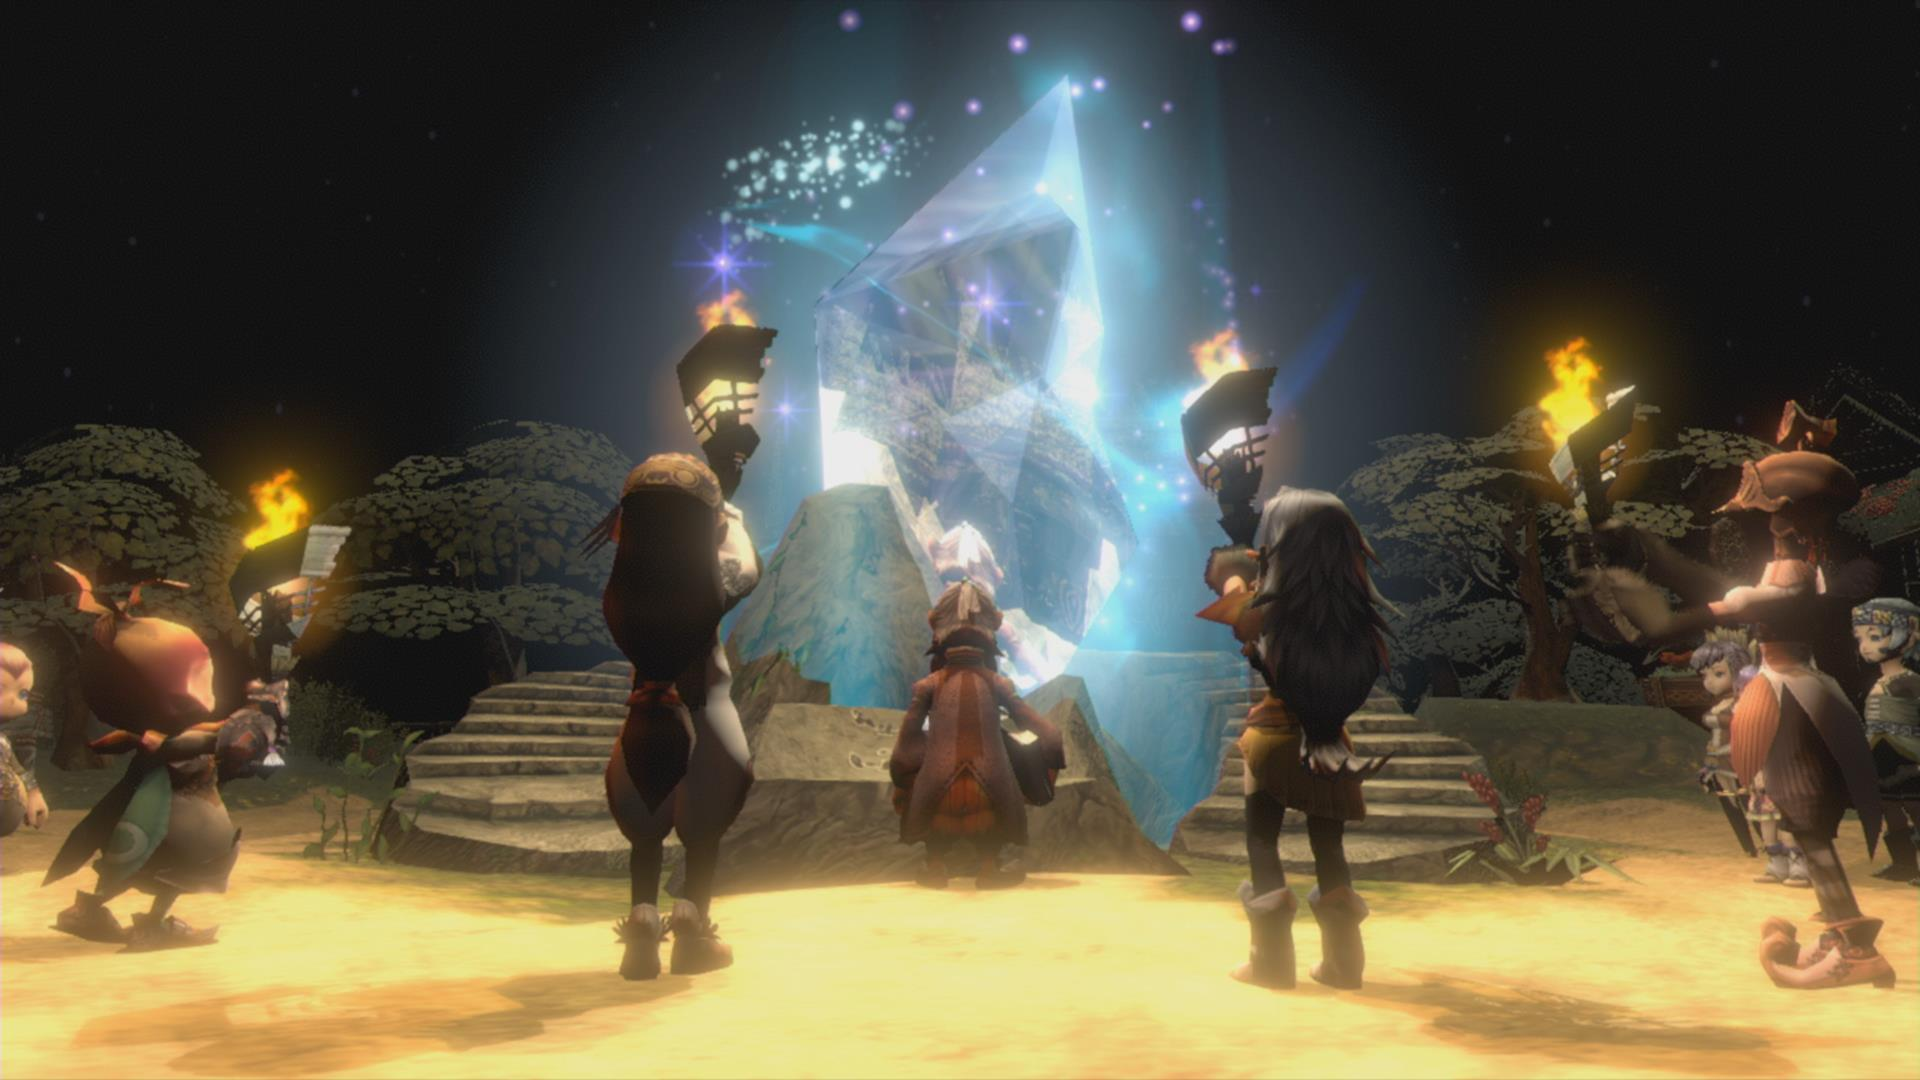 Here S A Look At Final Fantasy Crystal Chronicles Remastered